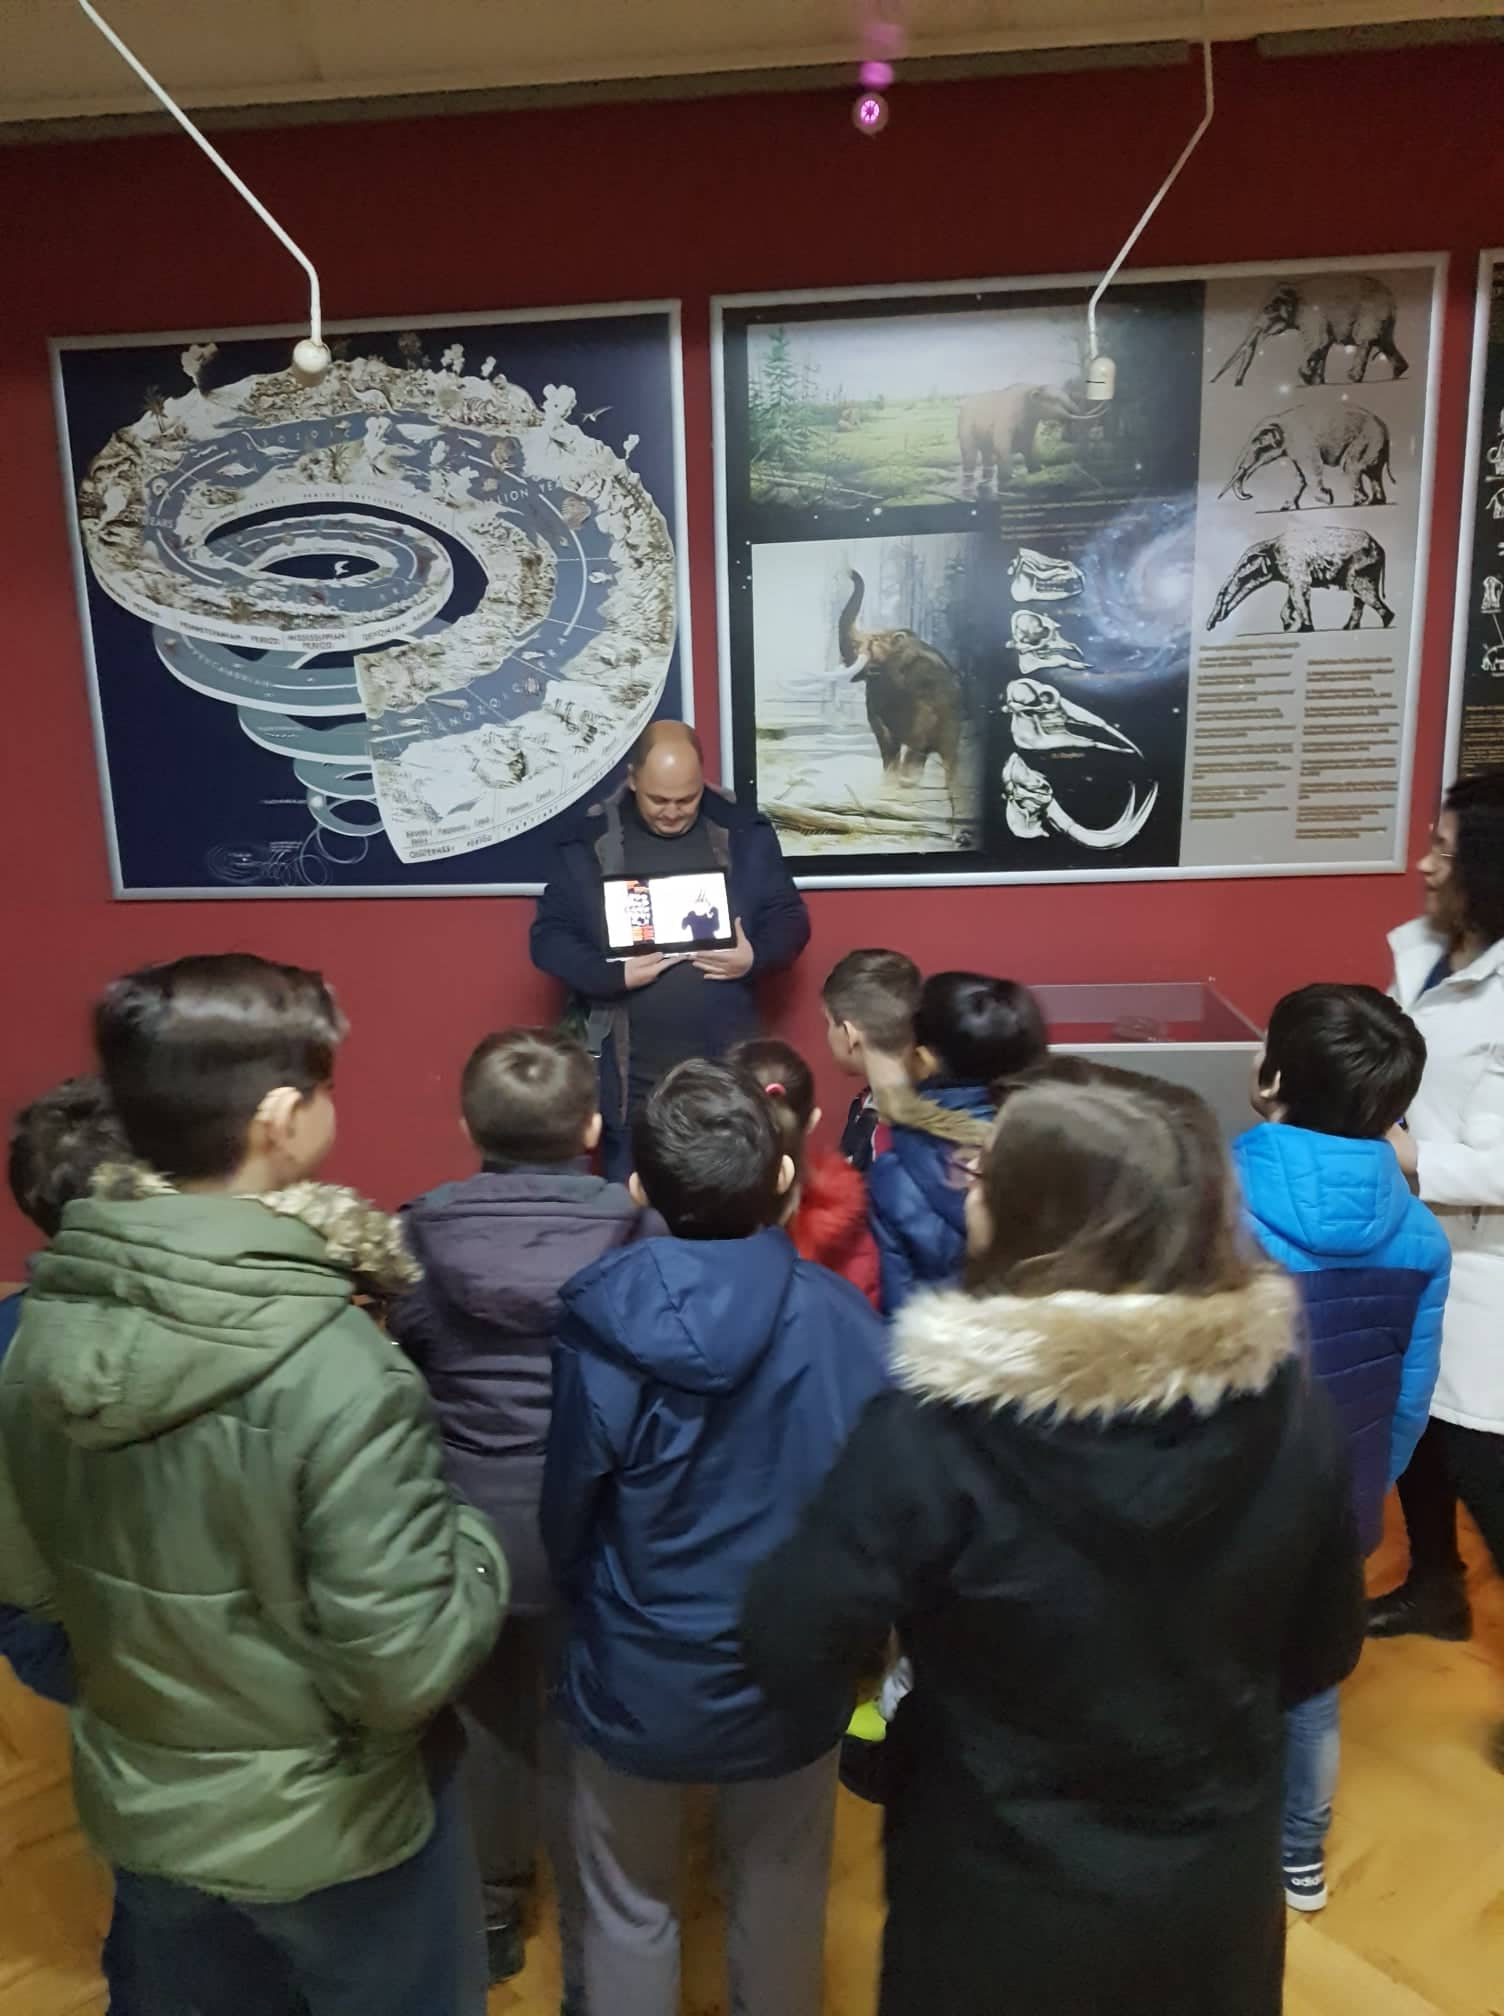 Photo 4 - Kids from Koco racin school visiting the museum - Increased accessibility and improved interpretation